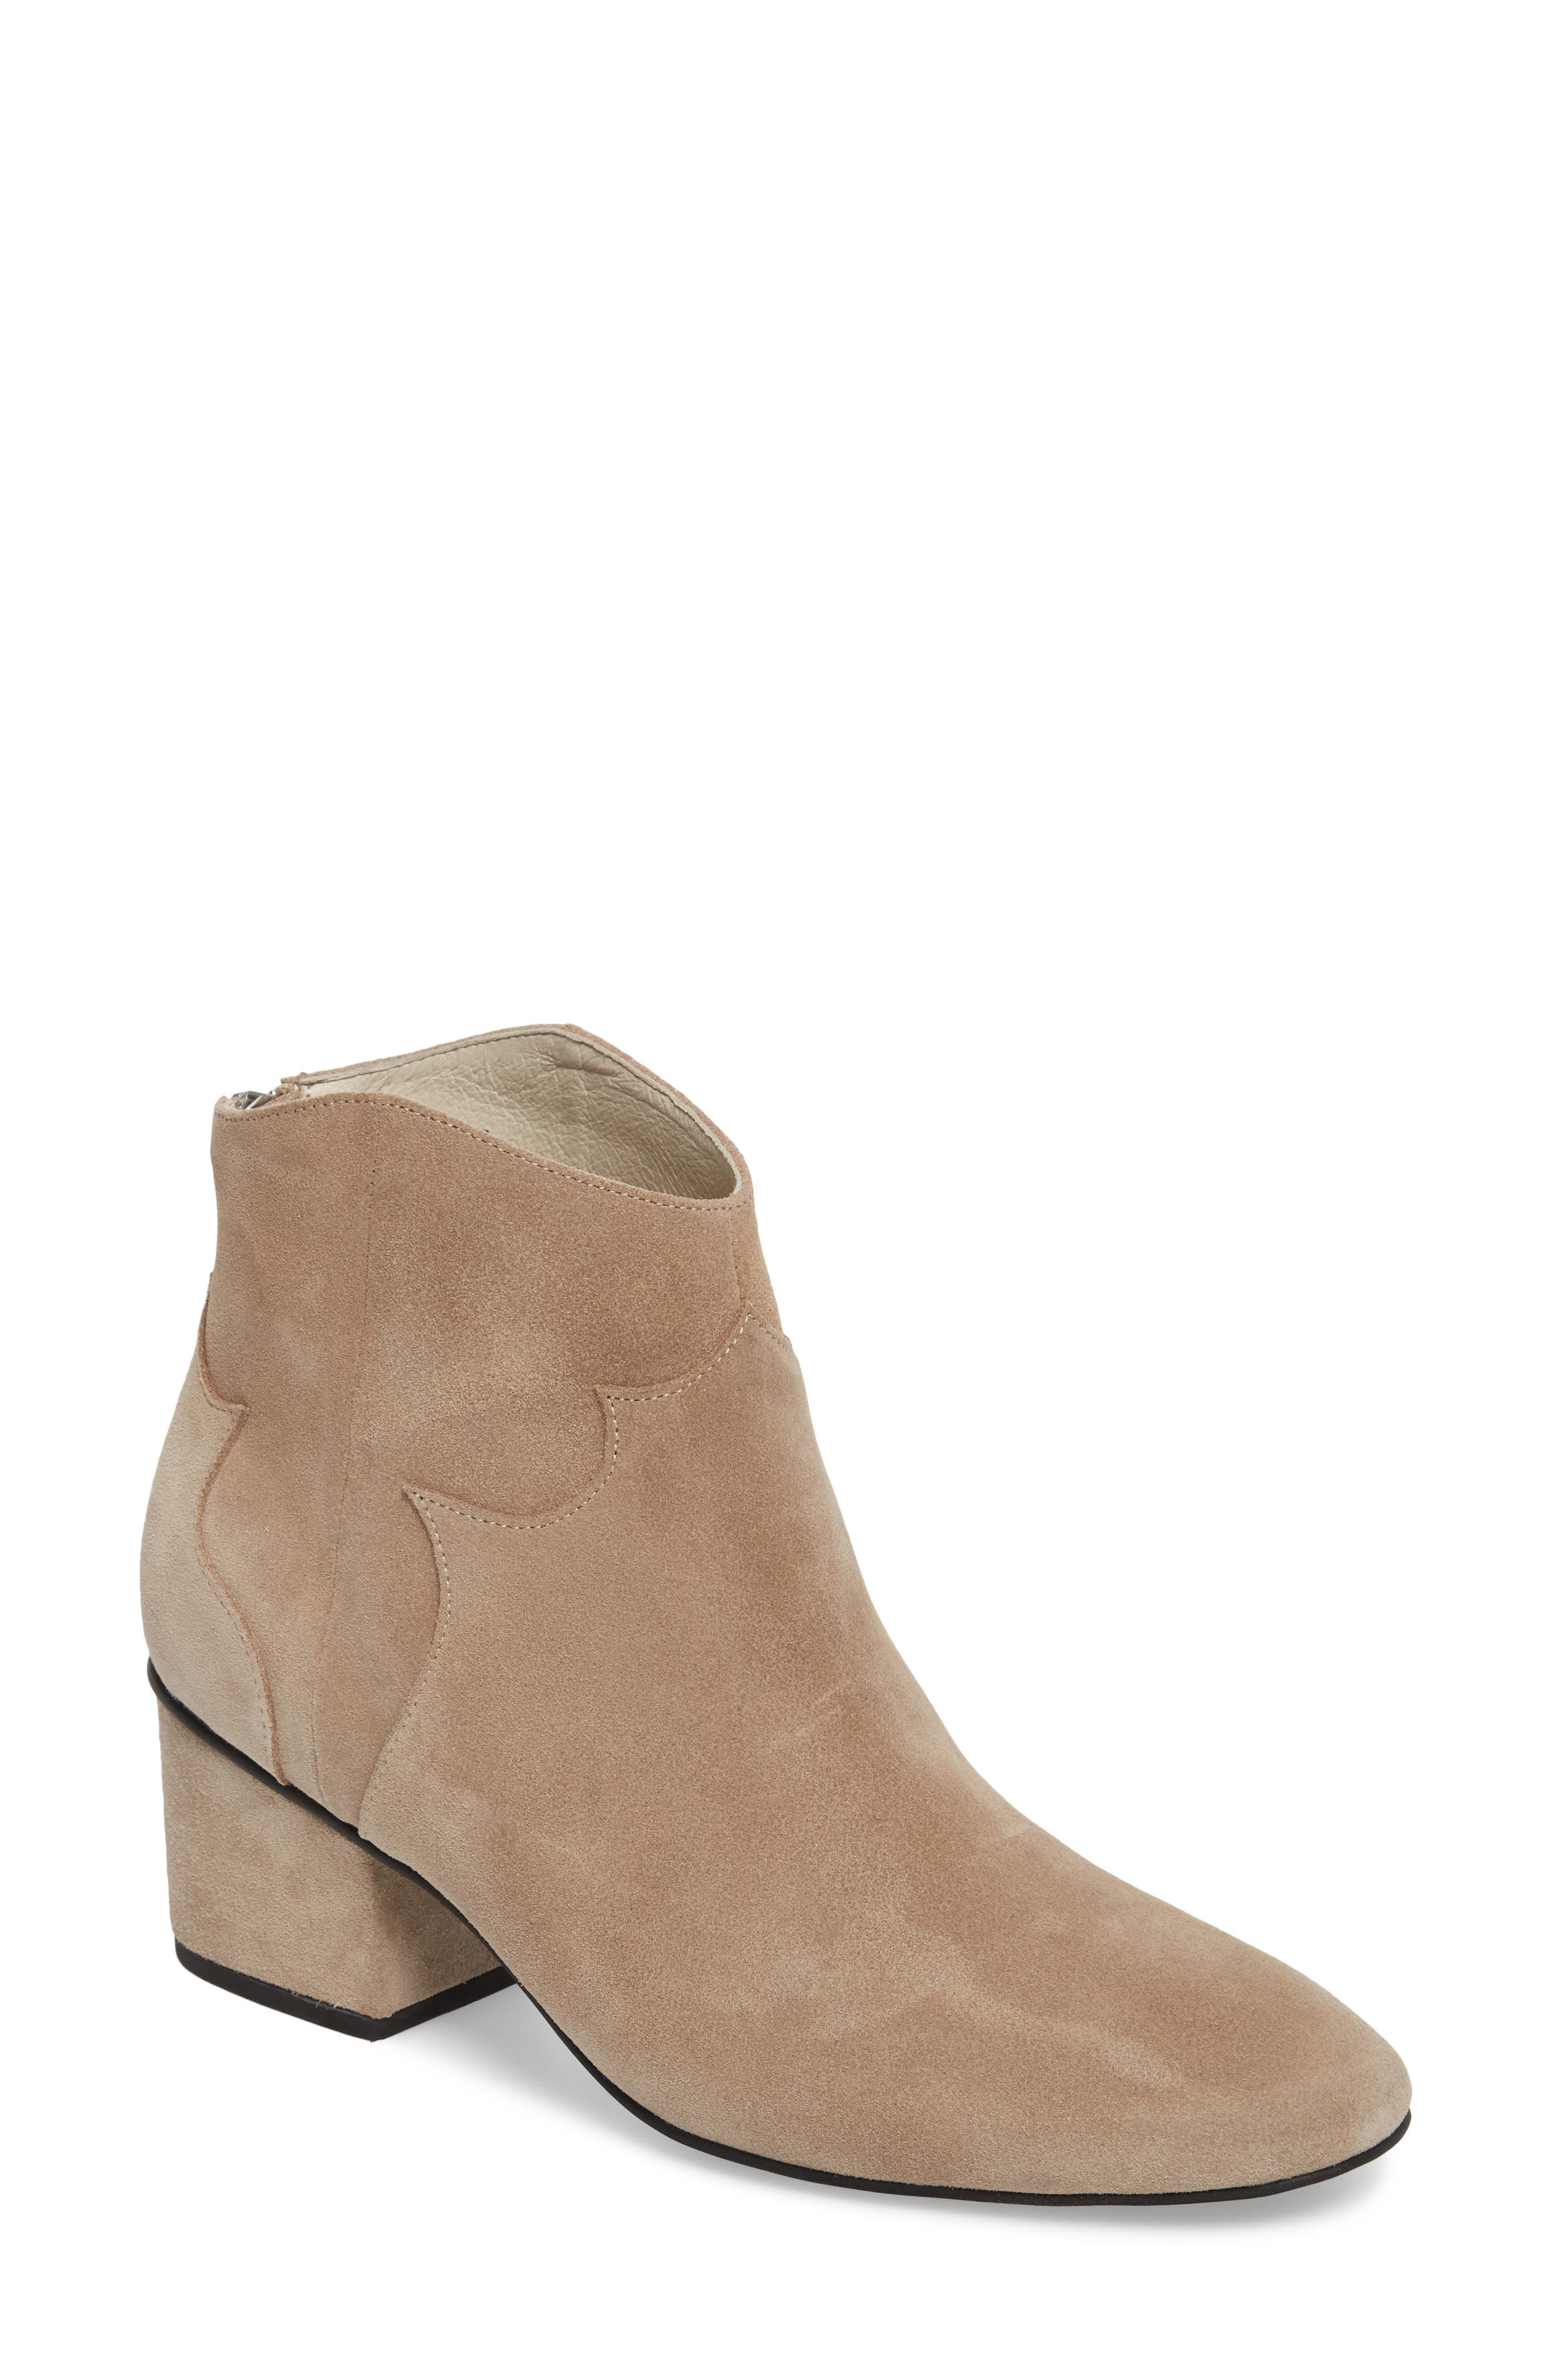 Texan Arched Bootie,                             Main thumbnail 1, color,                             Desert Suede